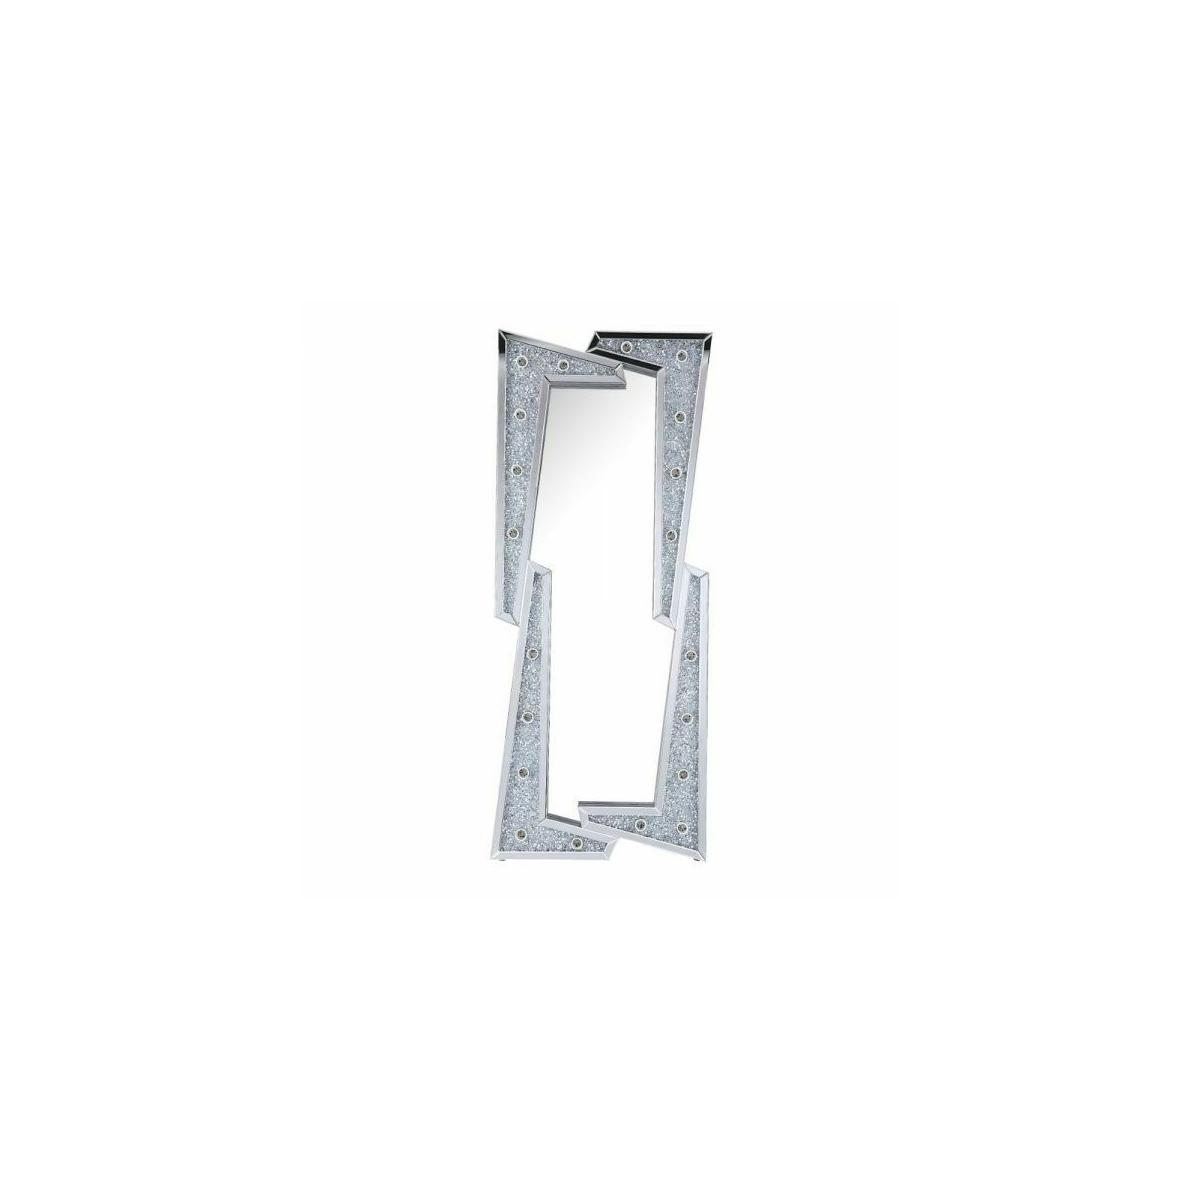 ACME Noralie Wall Decor - 97757 - Glam - LED Light, Mirror, Glass, MDF, Faux Diamonds (Acrylic) - Mirrored and Faux Diamonds